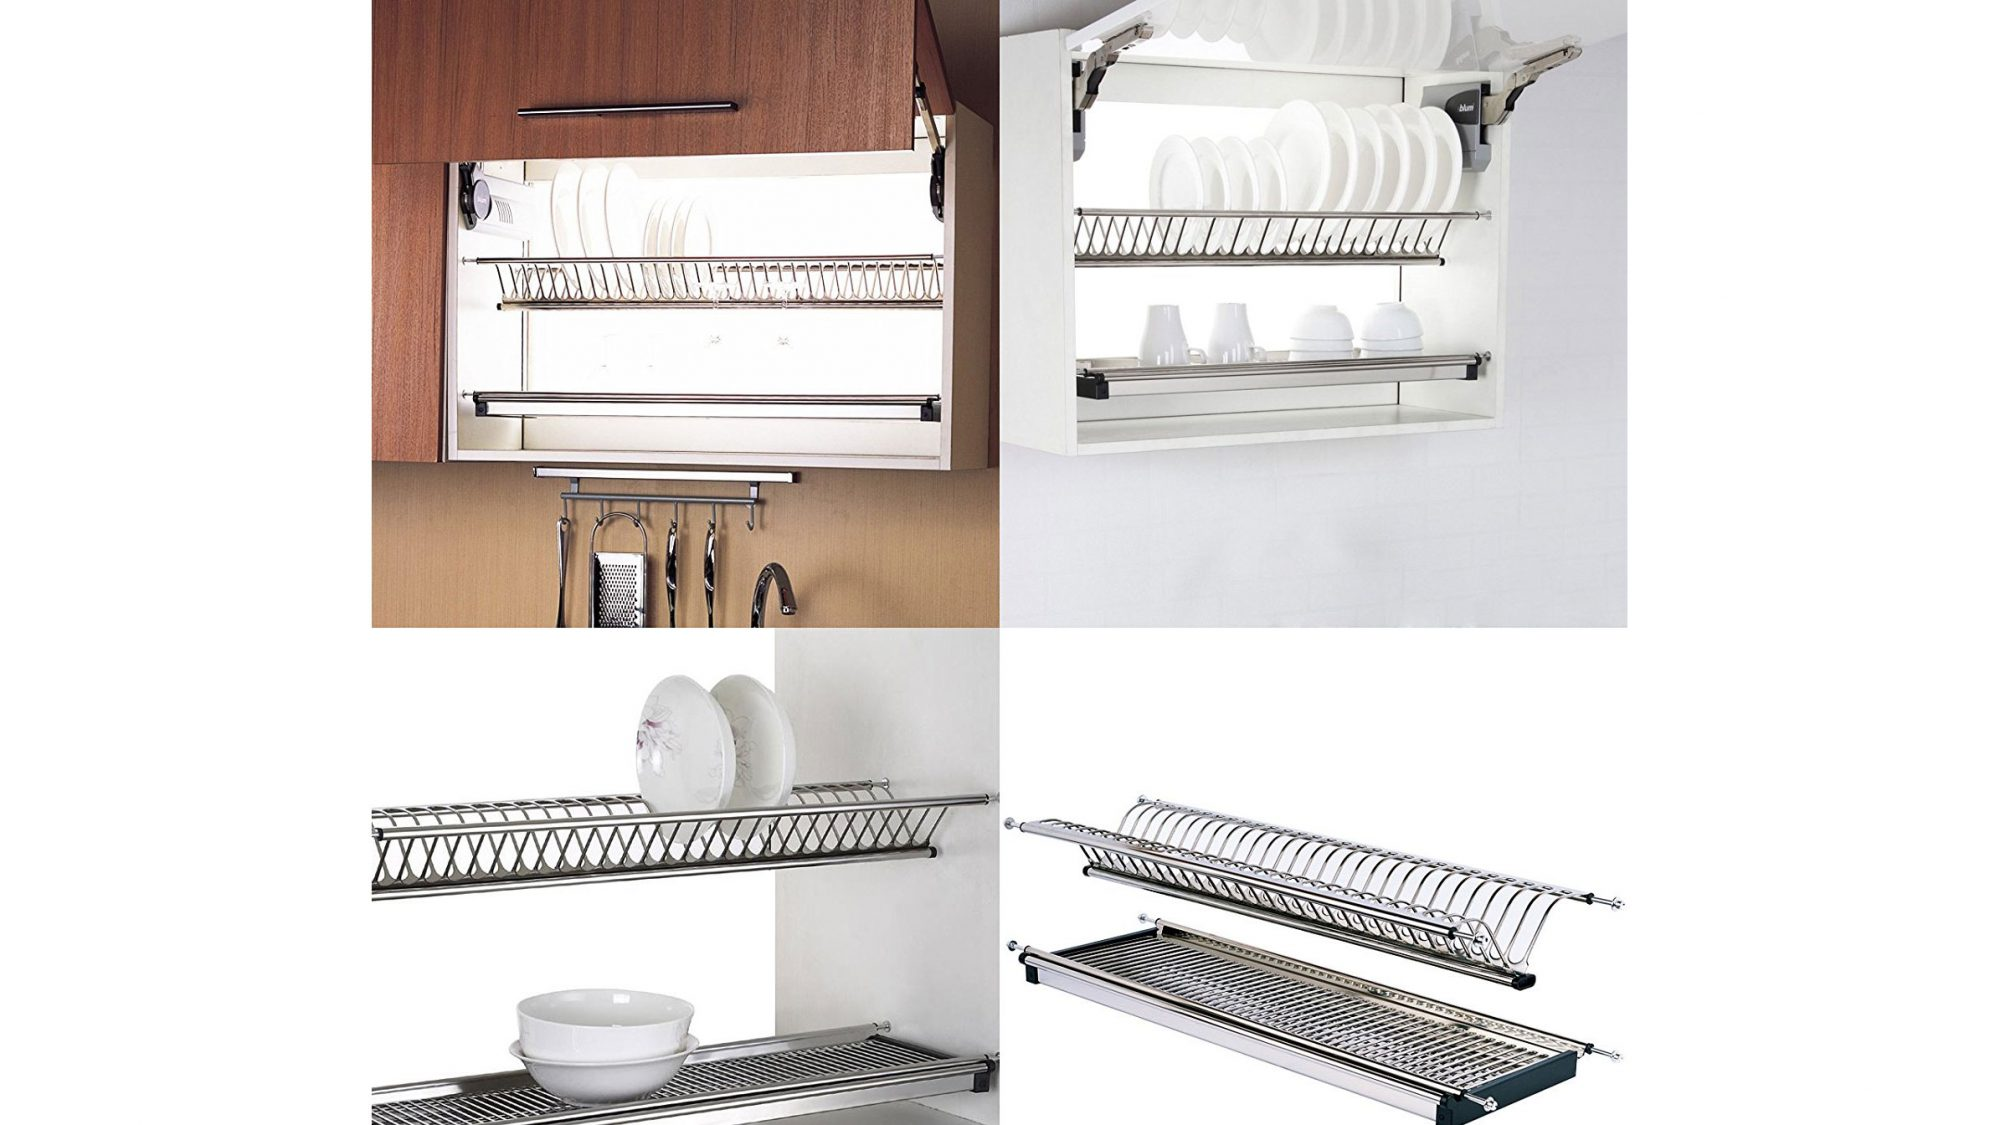 Beau Probrico Stainless Steel Dish Drying Rack